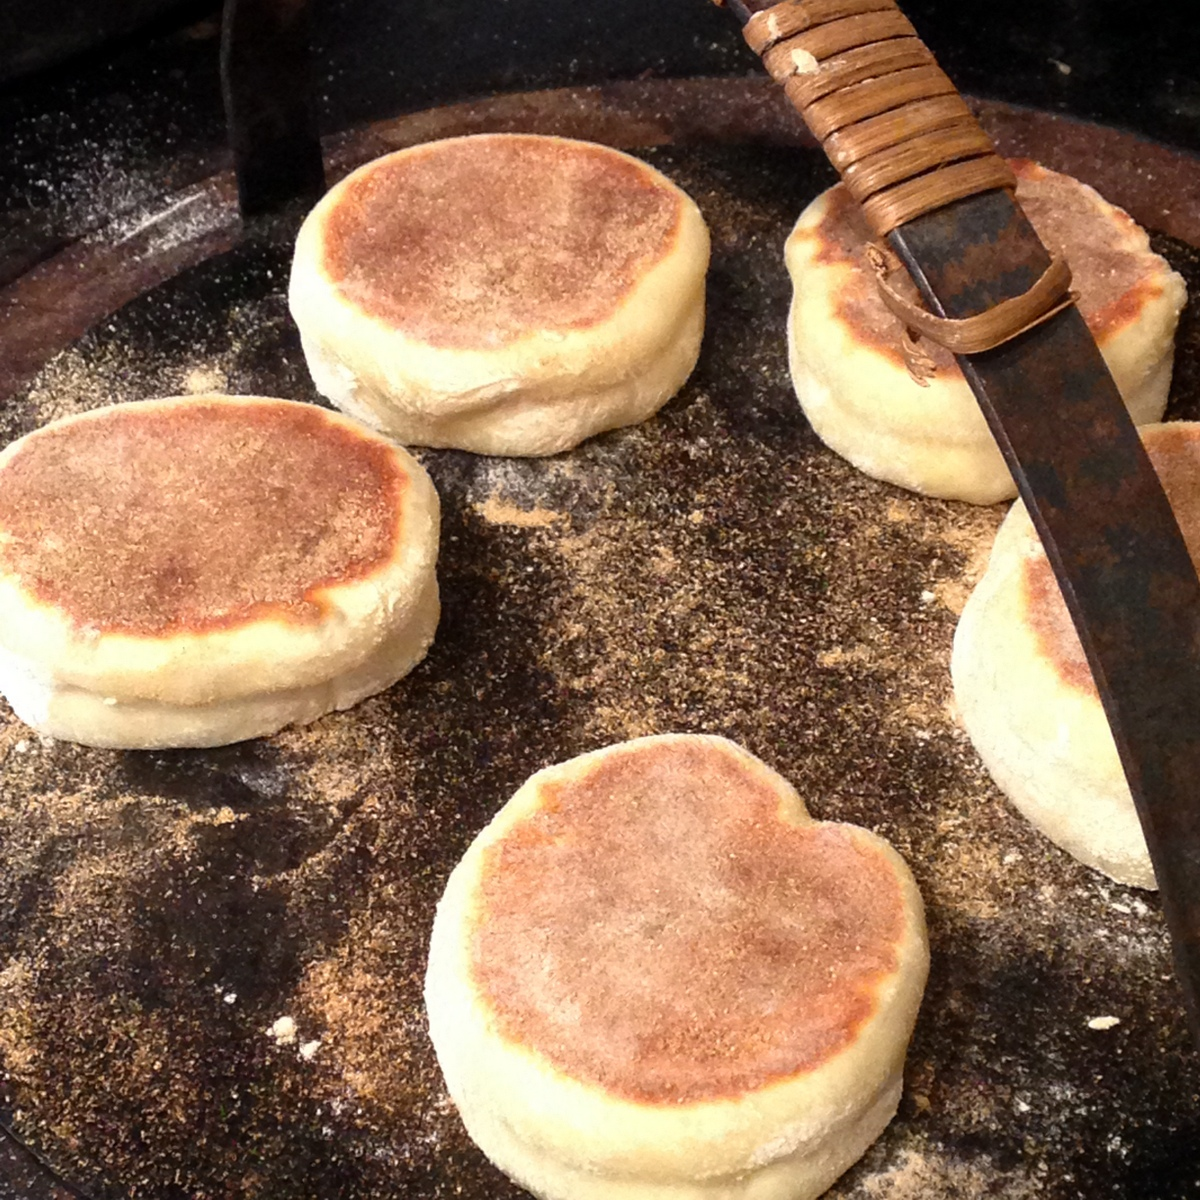 English muffins baking on girdle